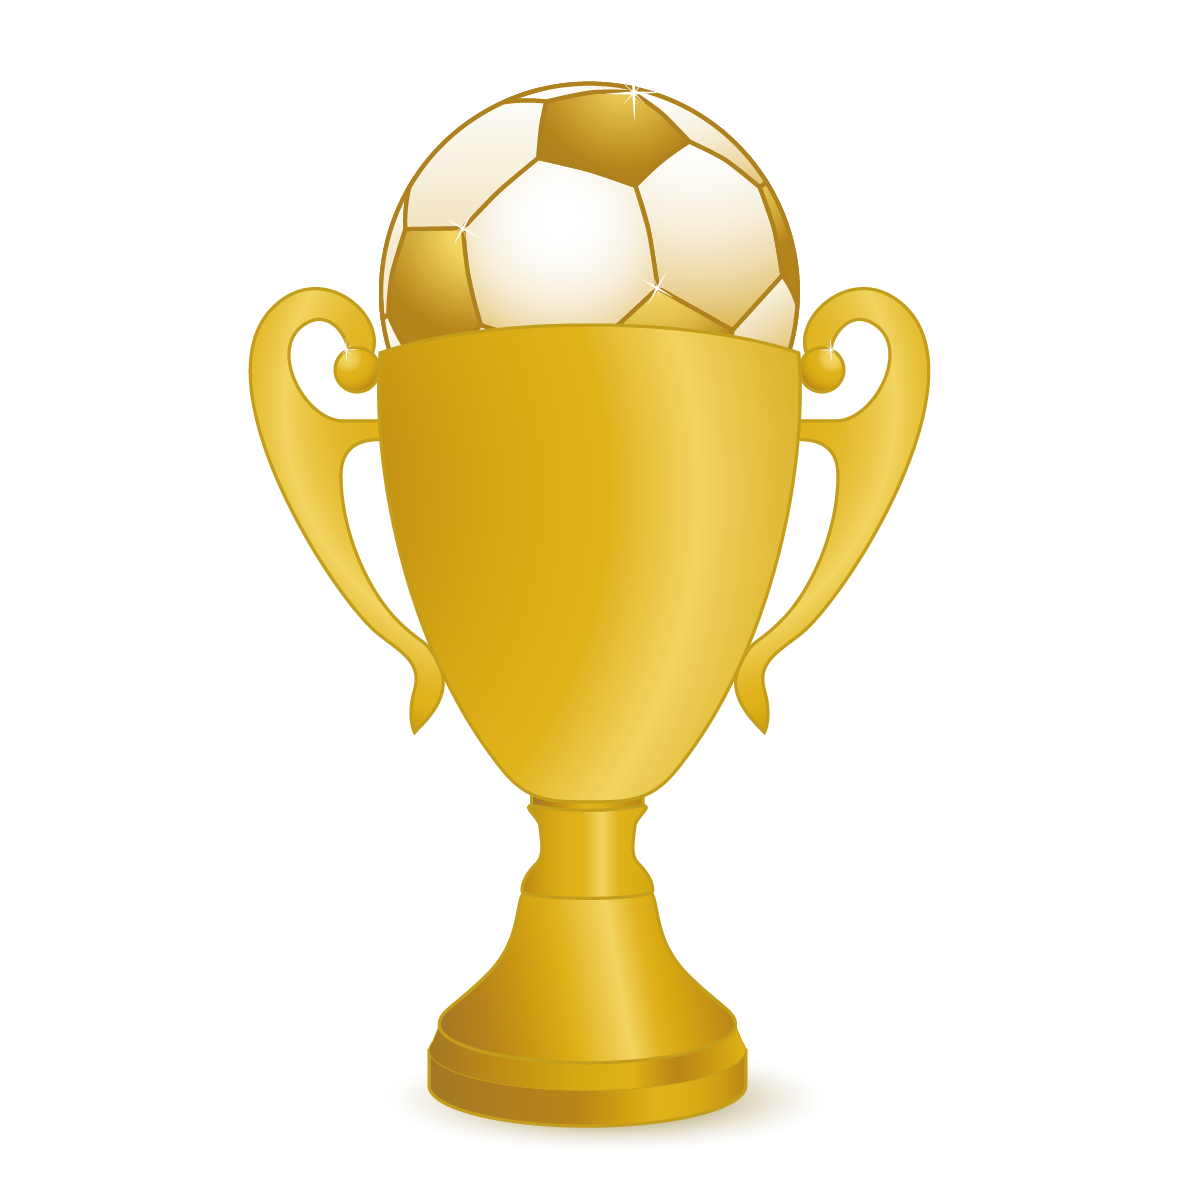 Football beer clipart png black and white download 2010 FIFA World Cup South Africa FIFA World Cup Trophy Clip art ... png black and white download